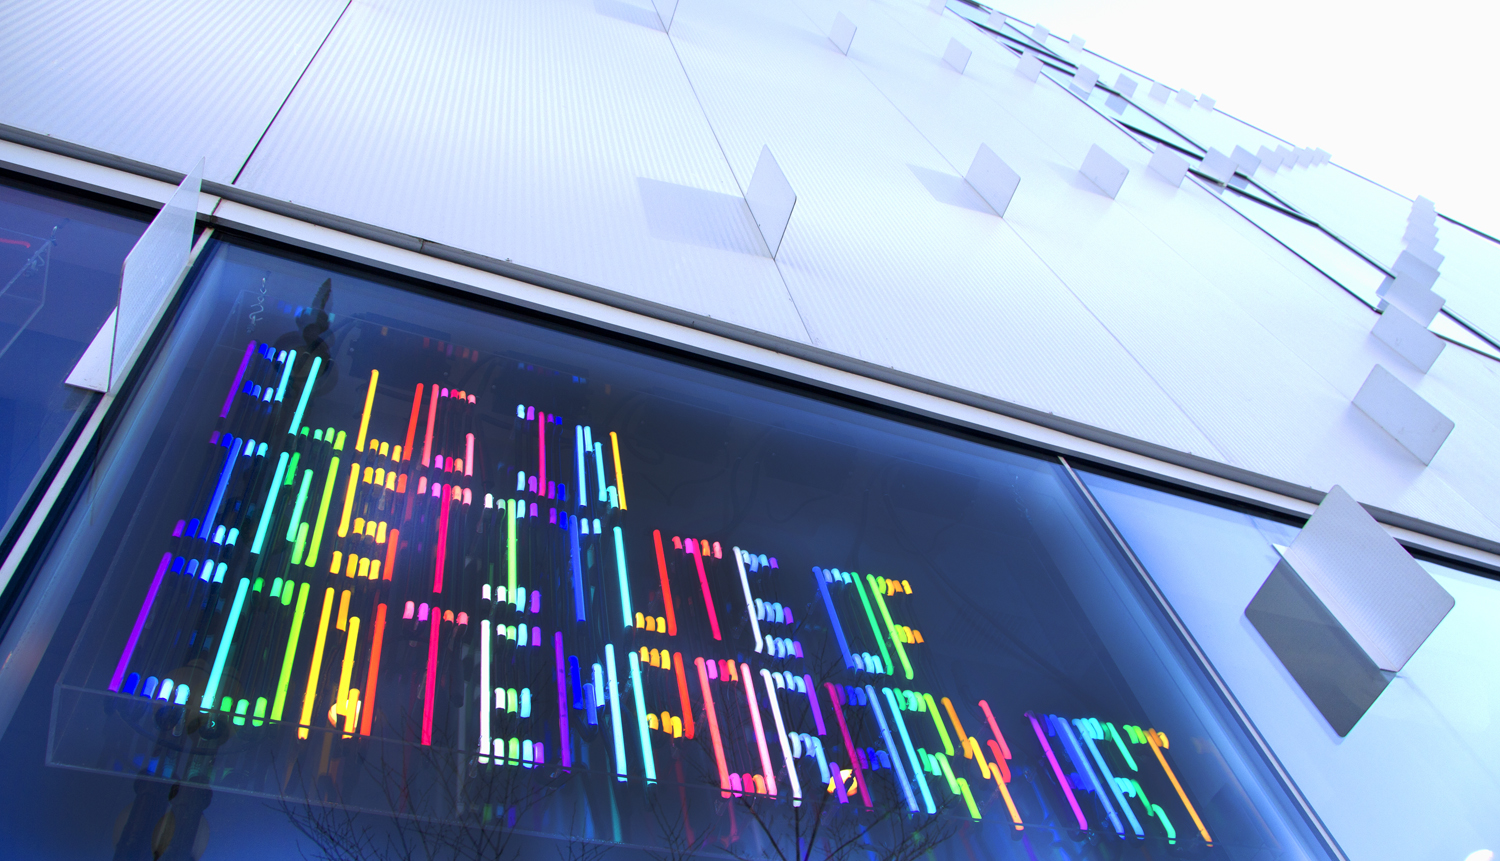 PIICA Neon Sign